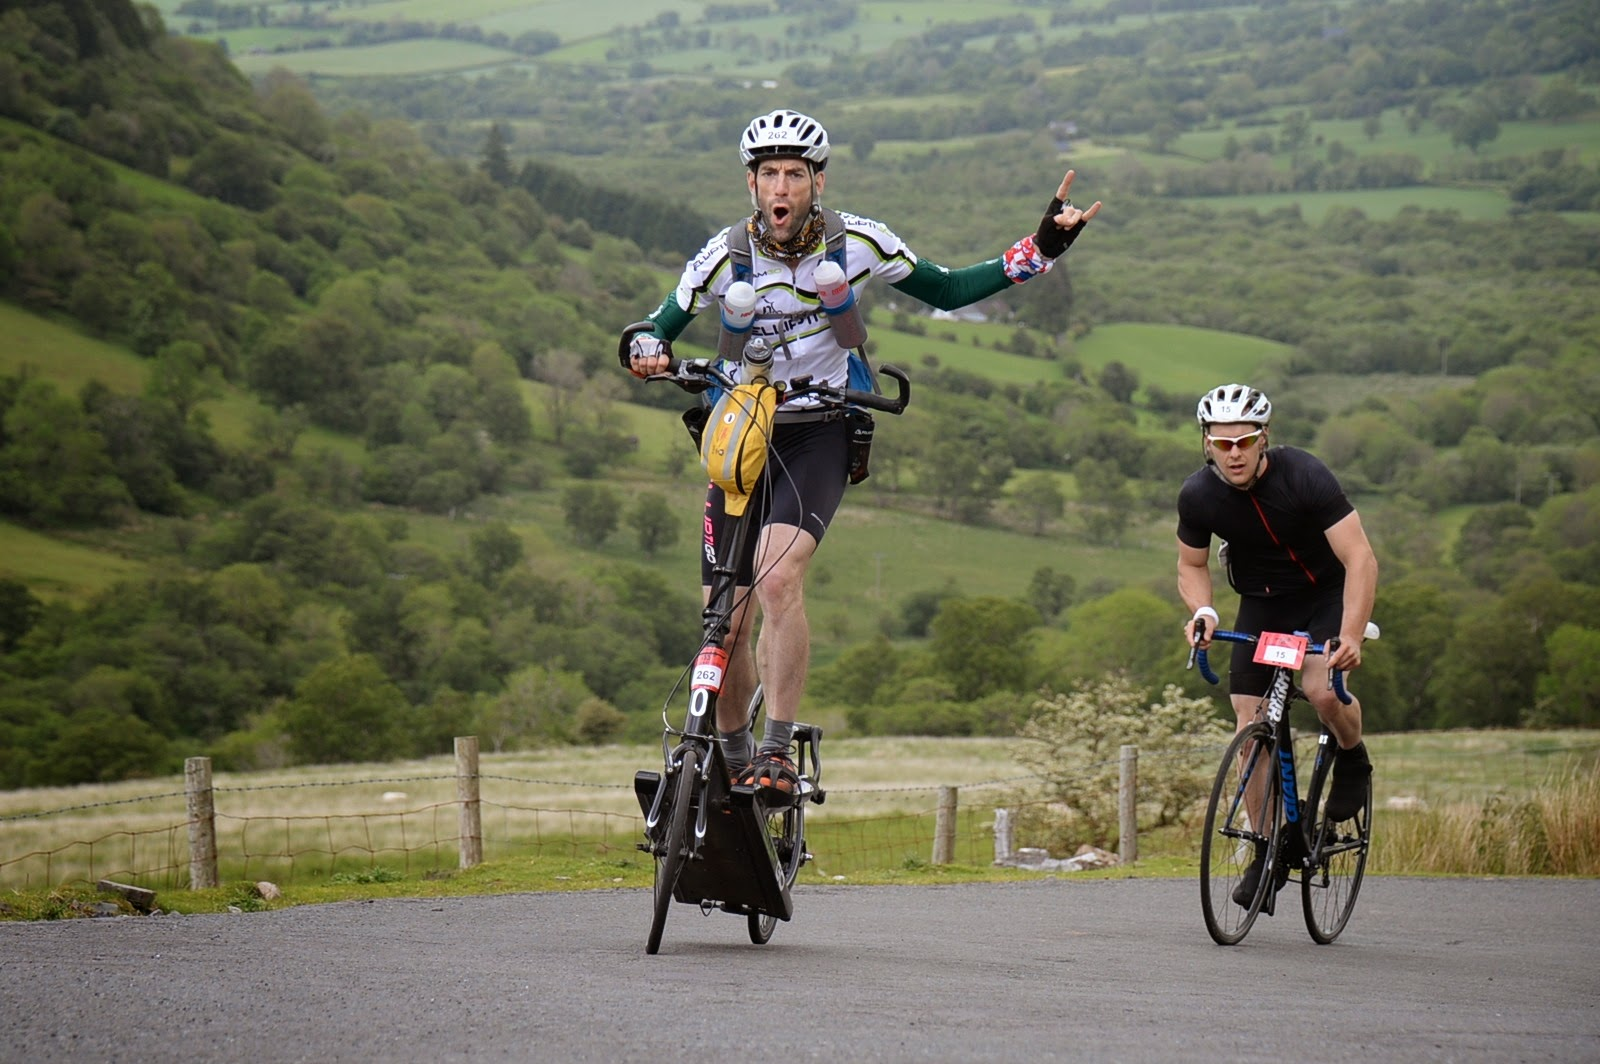 Stu taking on the Devil's Staircase Climb in the 2014 Wiggle Dragon Ride.